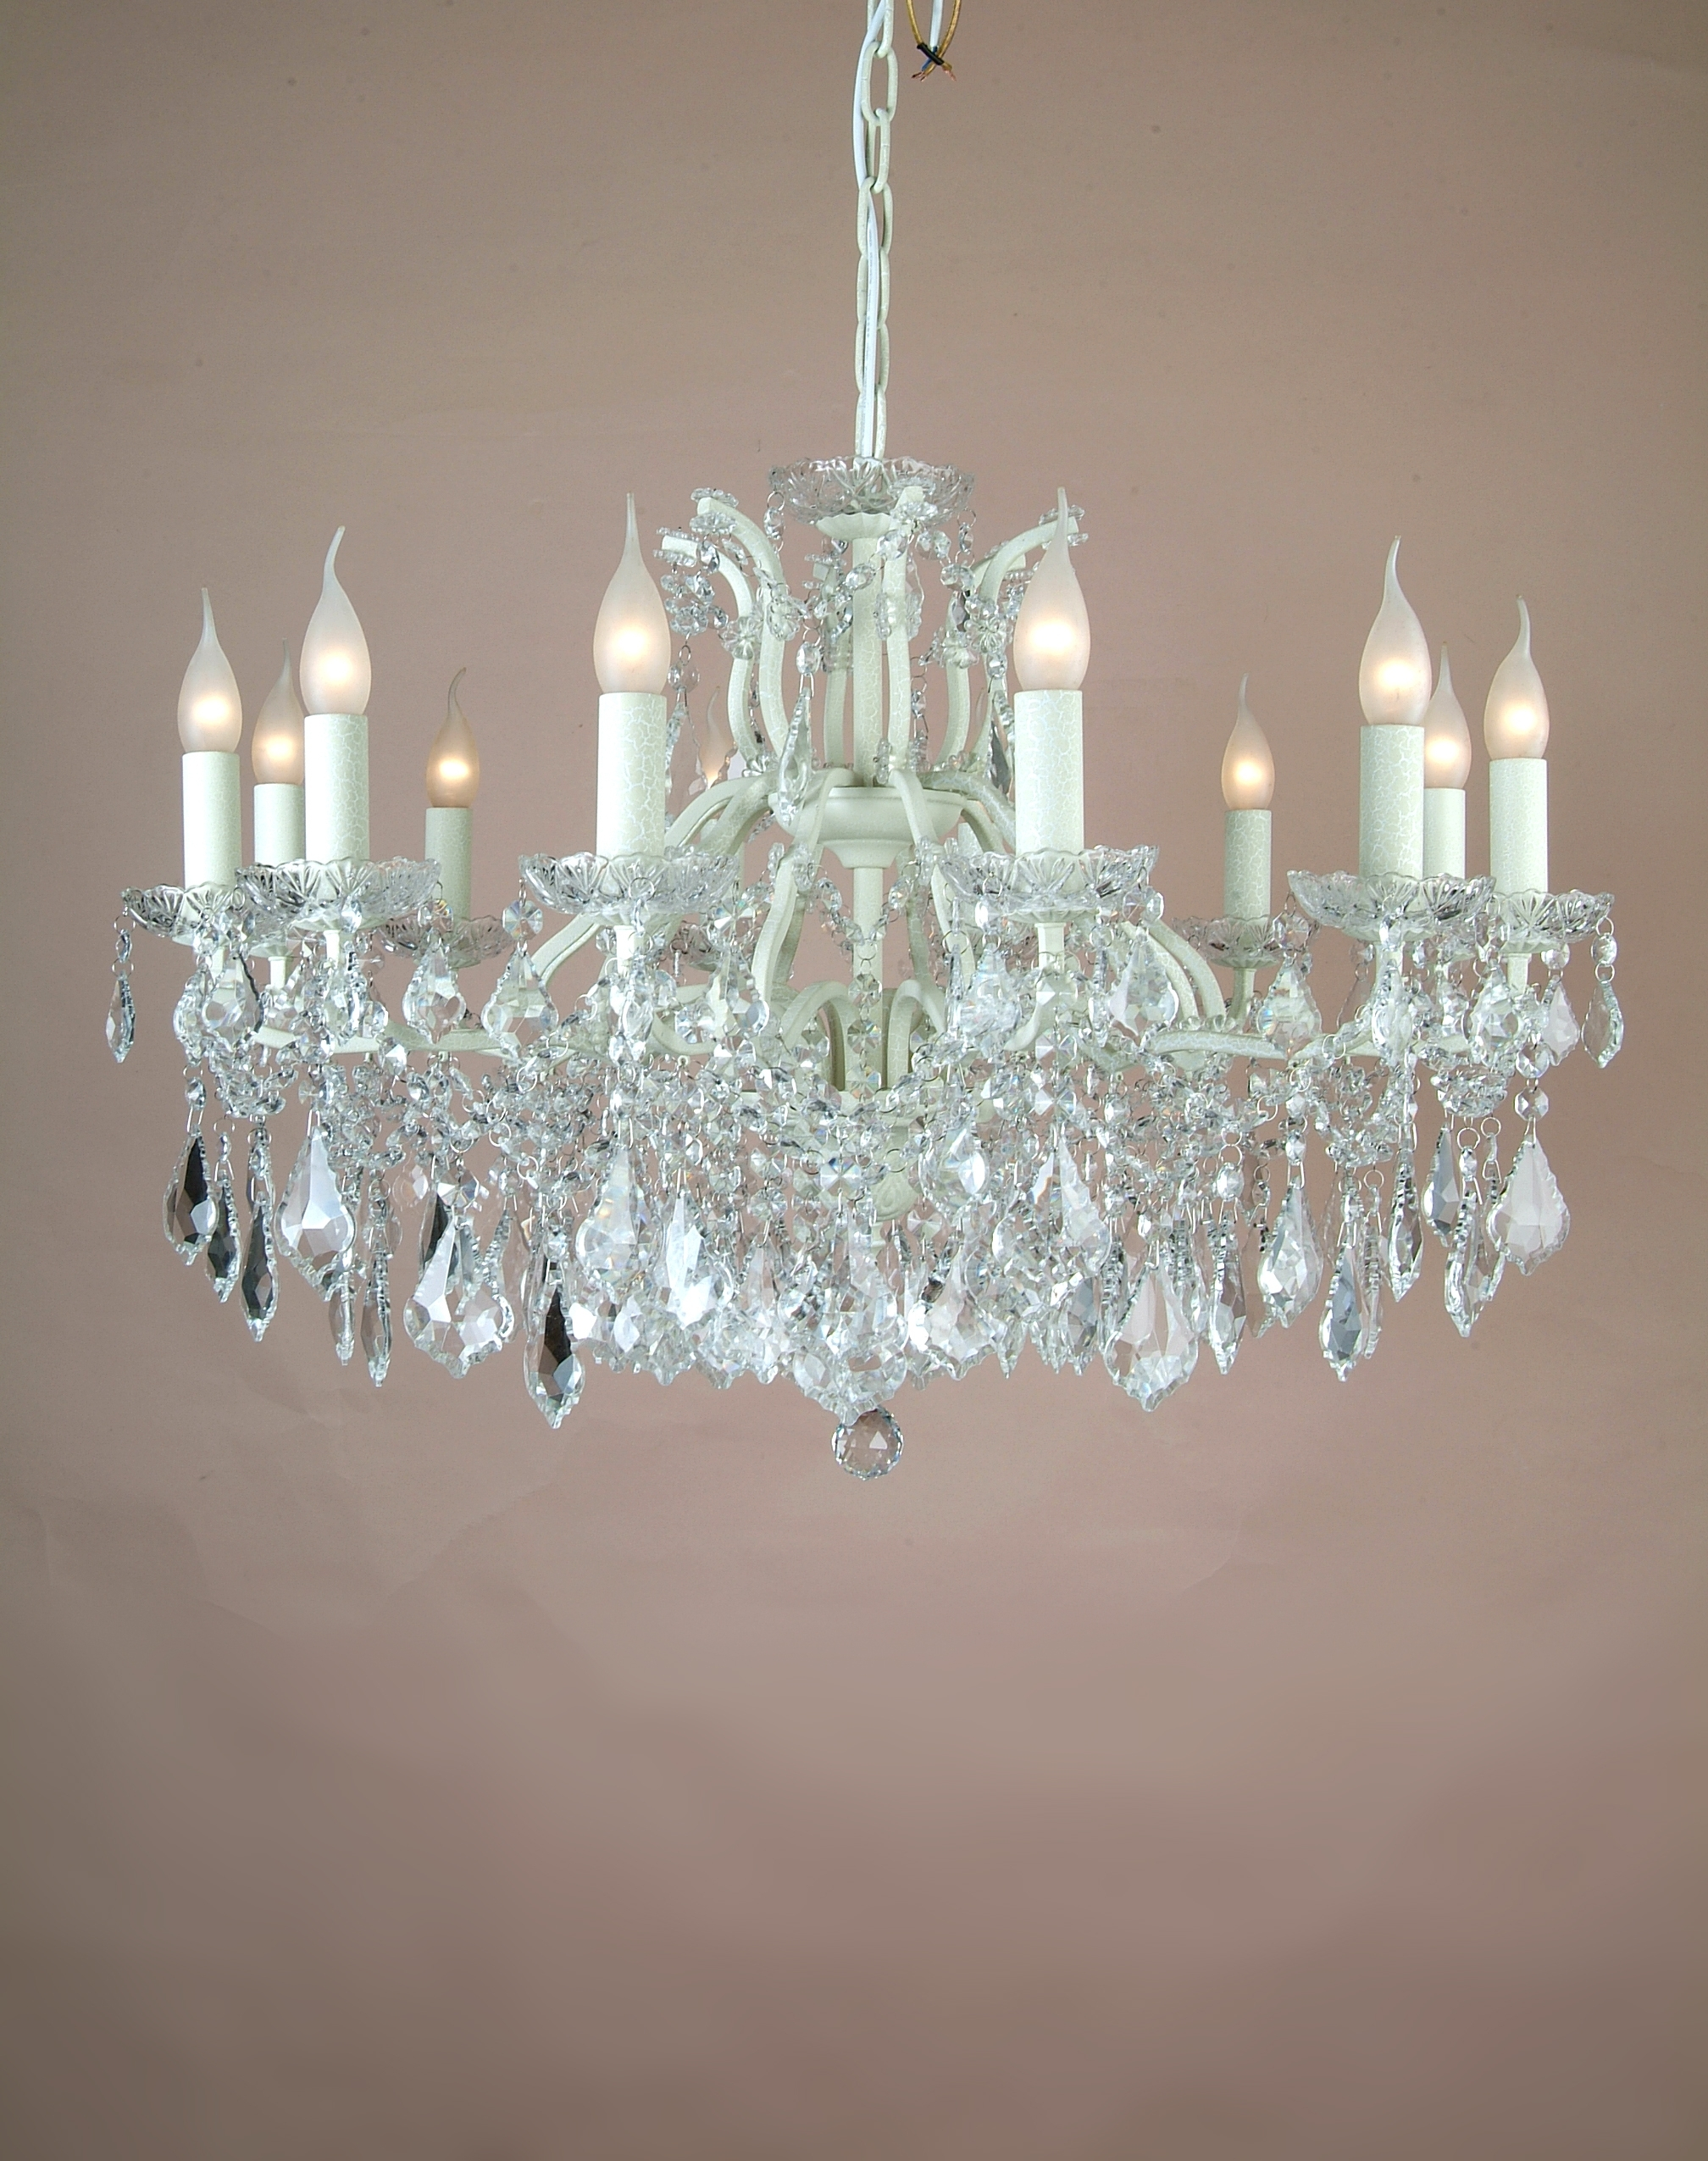 Glass Chandeliers – Otbsiu Within Best And Newest Glass Chandeliers (View 19 of 20)